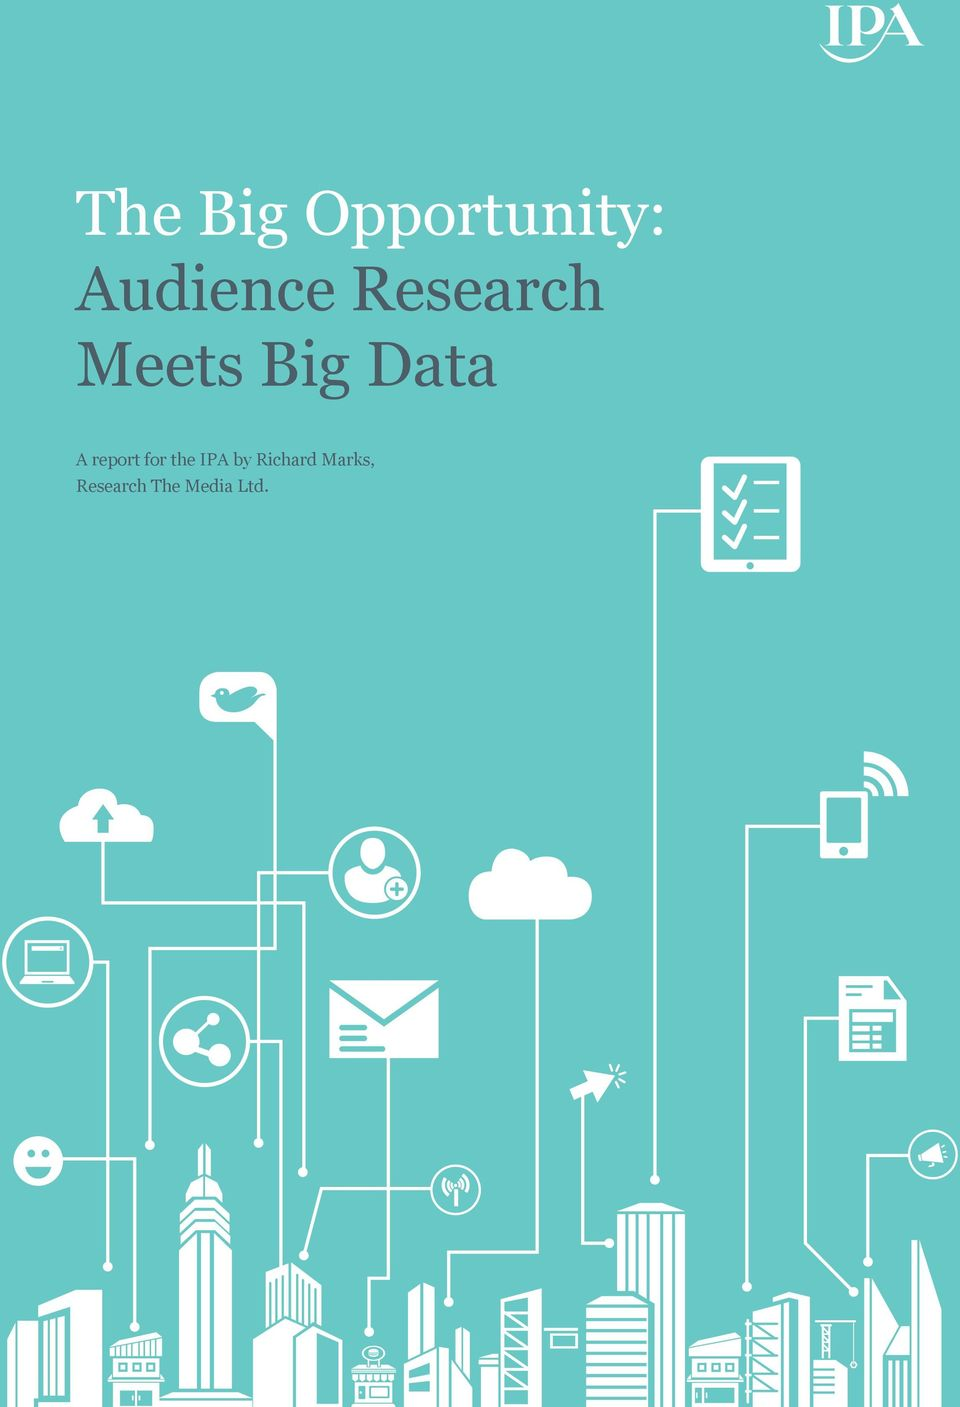 Data A report for the IPA by